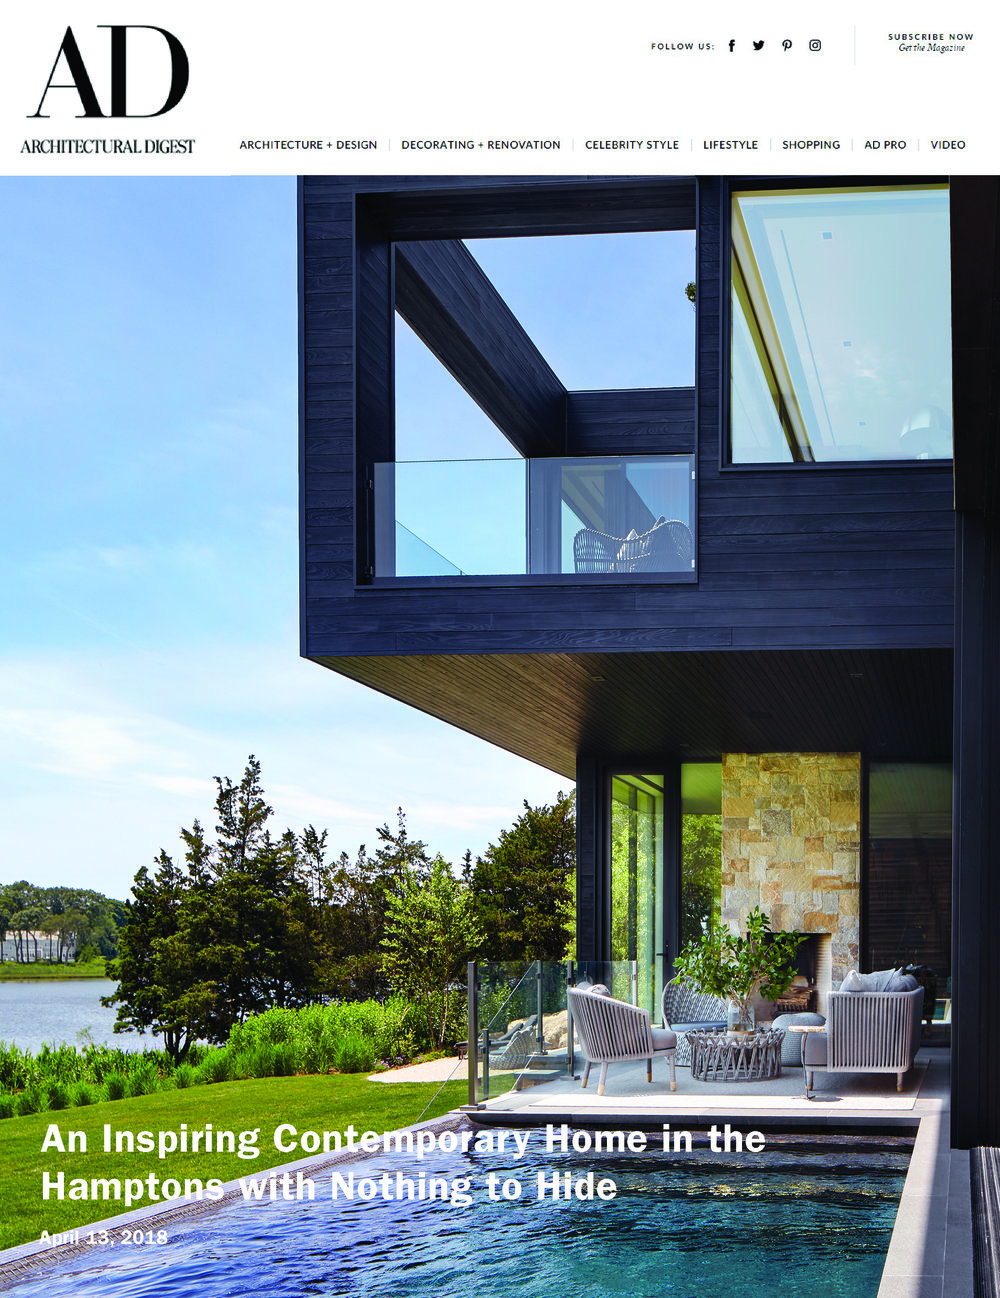 04132018_ADO_An Inspiring Contemporary Home in the Hamptons with Nothing to Hide.jpg